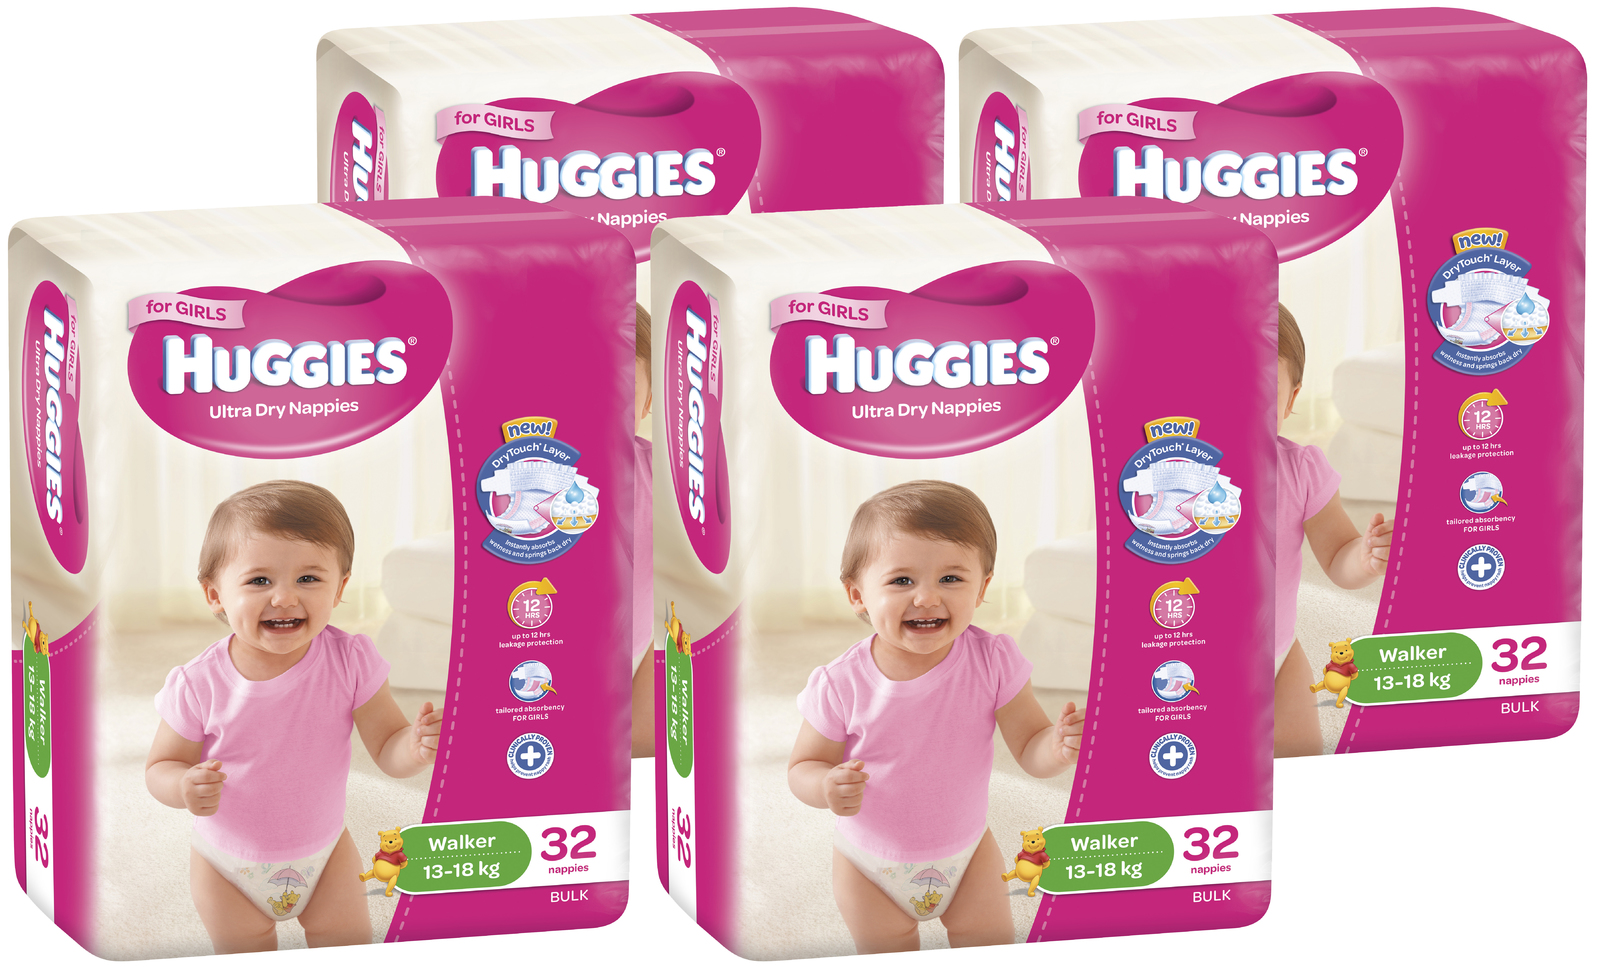 Huggies Ultra Dry Nappies Bulk Shipper - Walker Girl 13-18kg (128) image